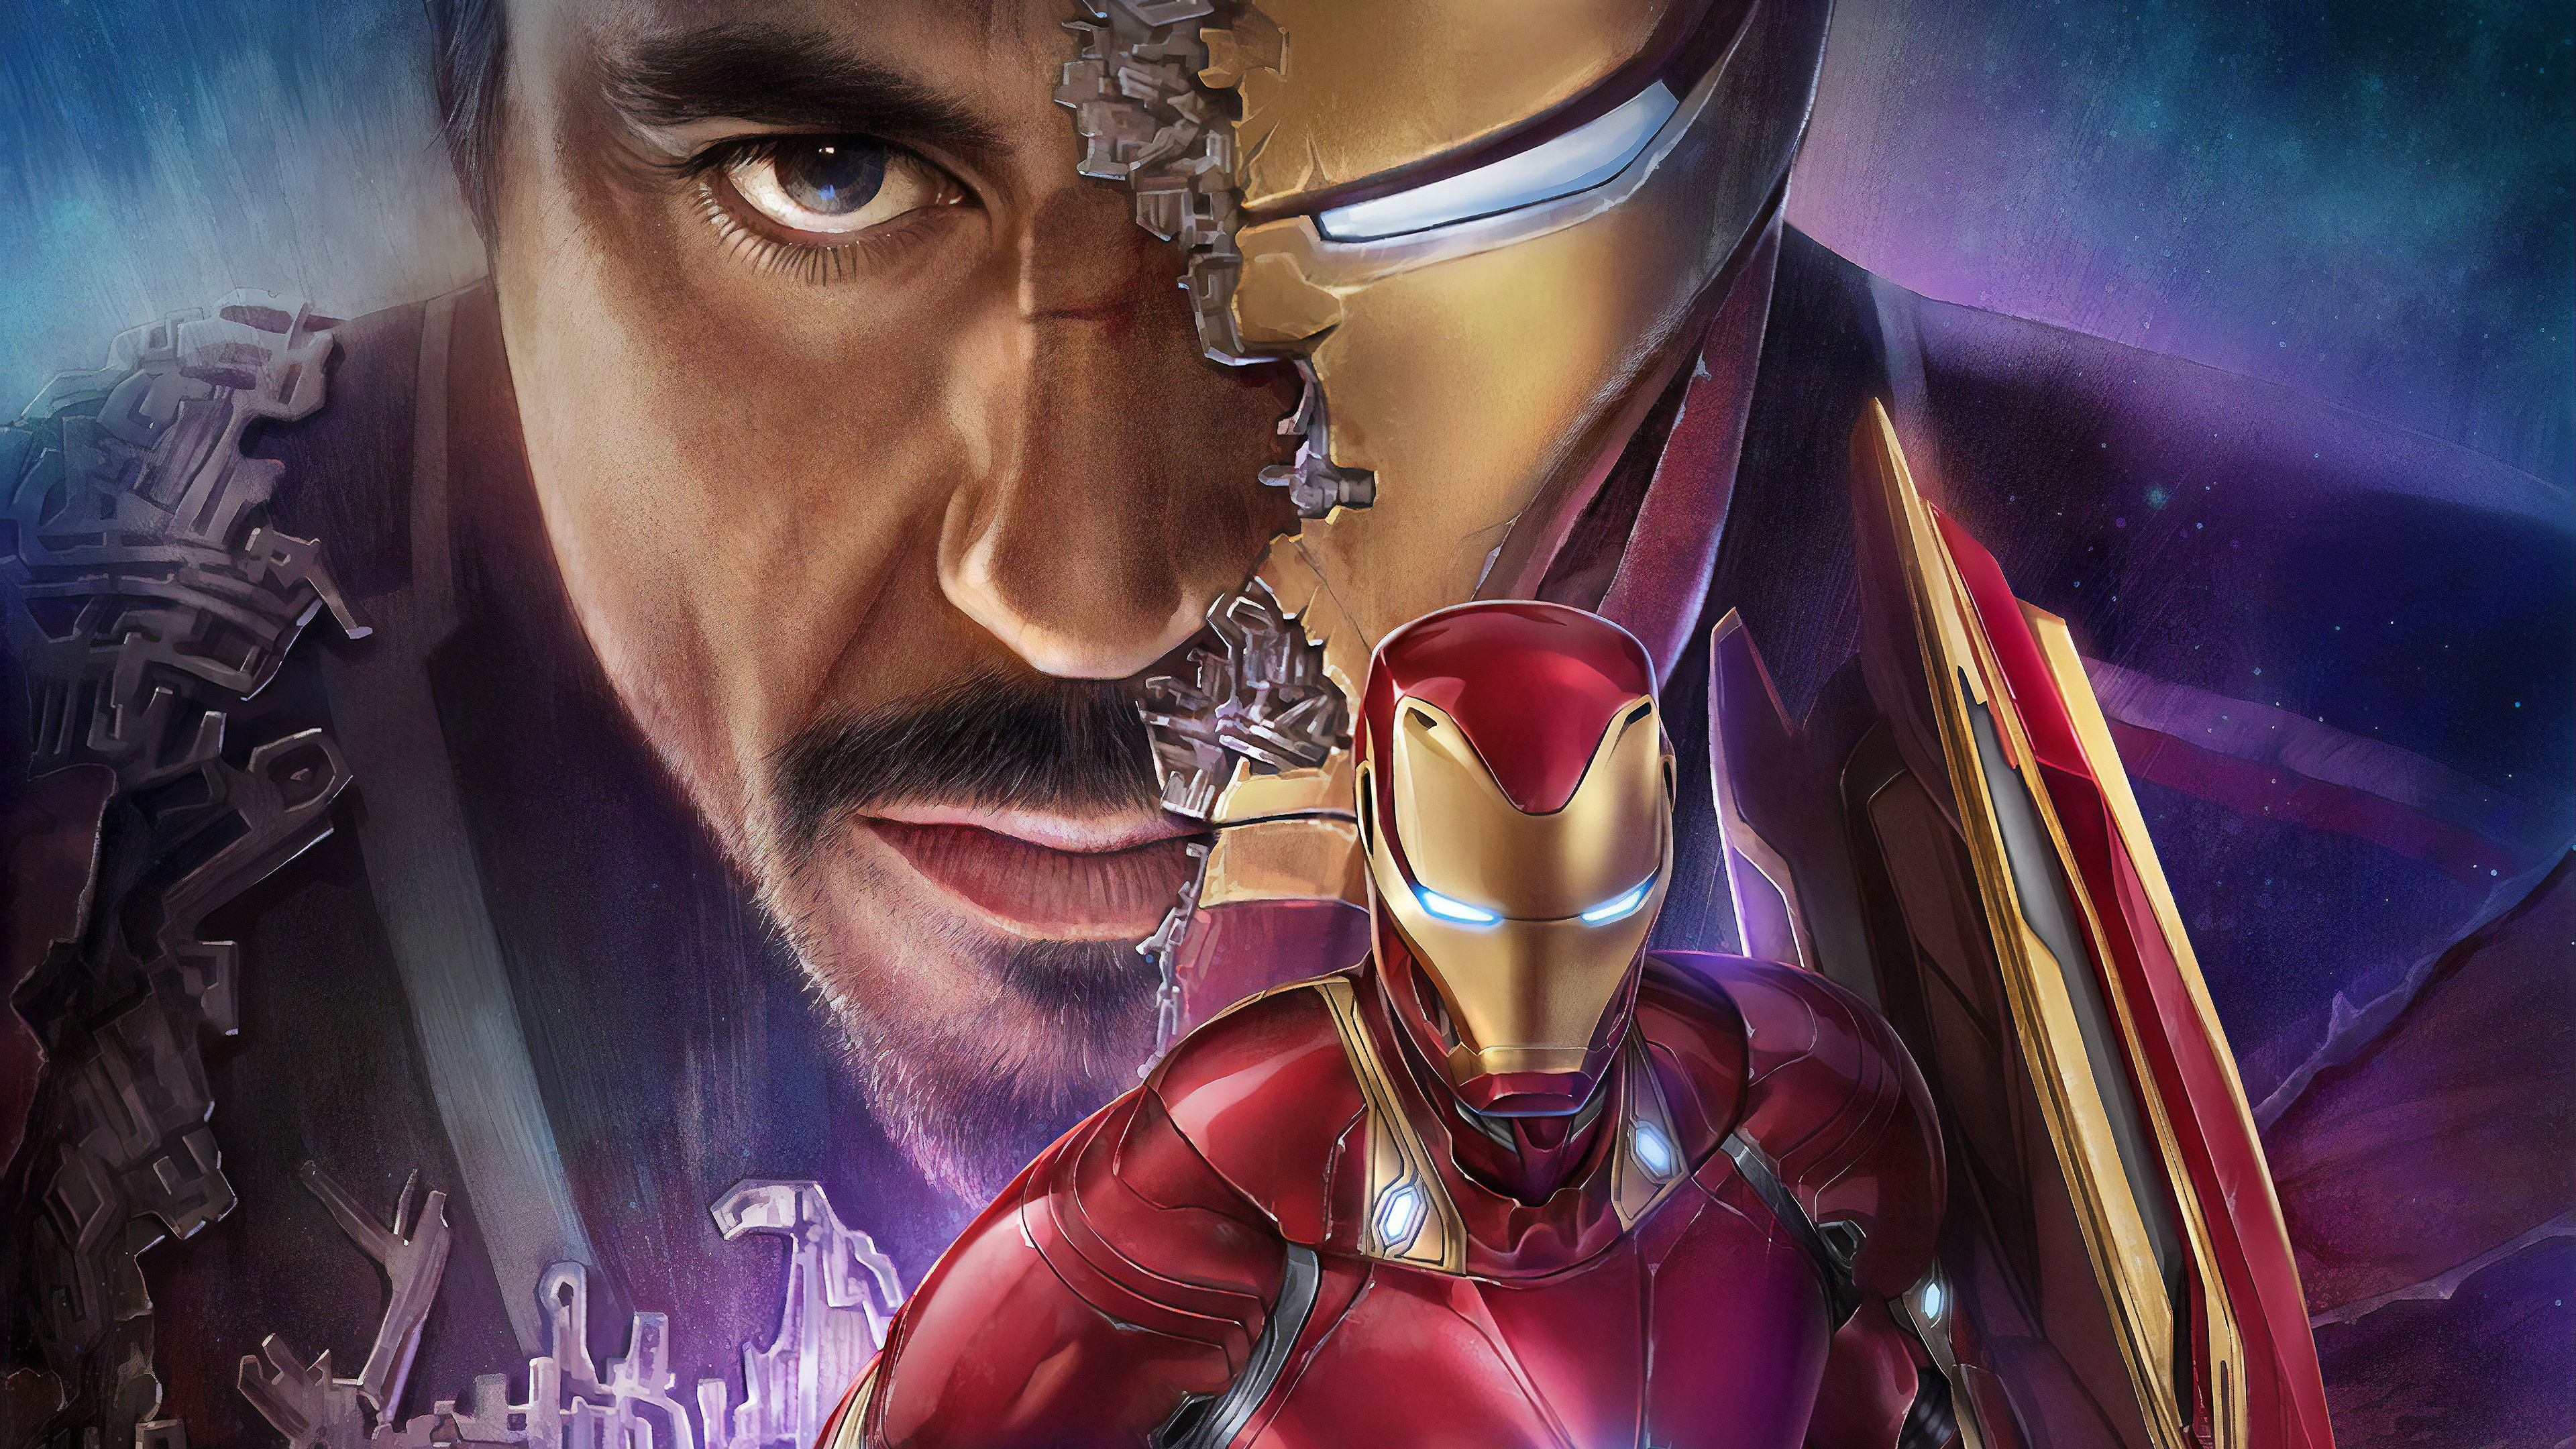 Wallpaper 4k Tony Stark Iron Man 4k 4k Wallpapers Artist